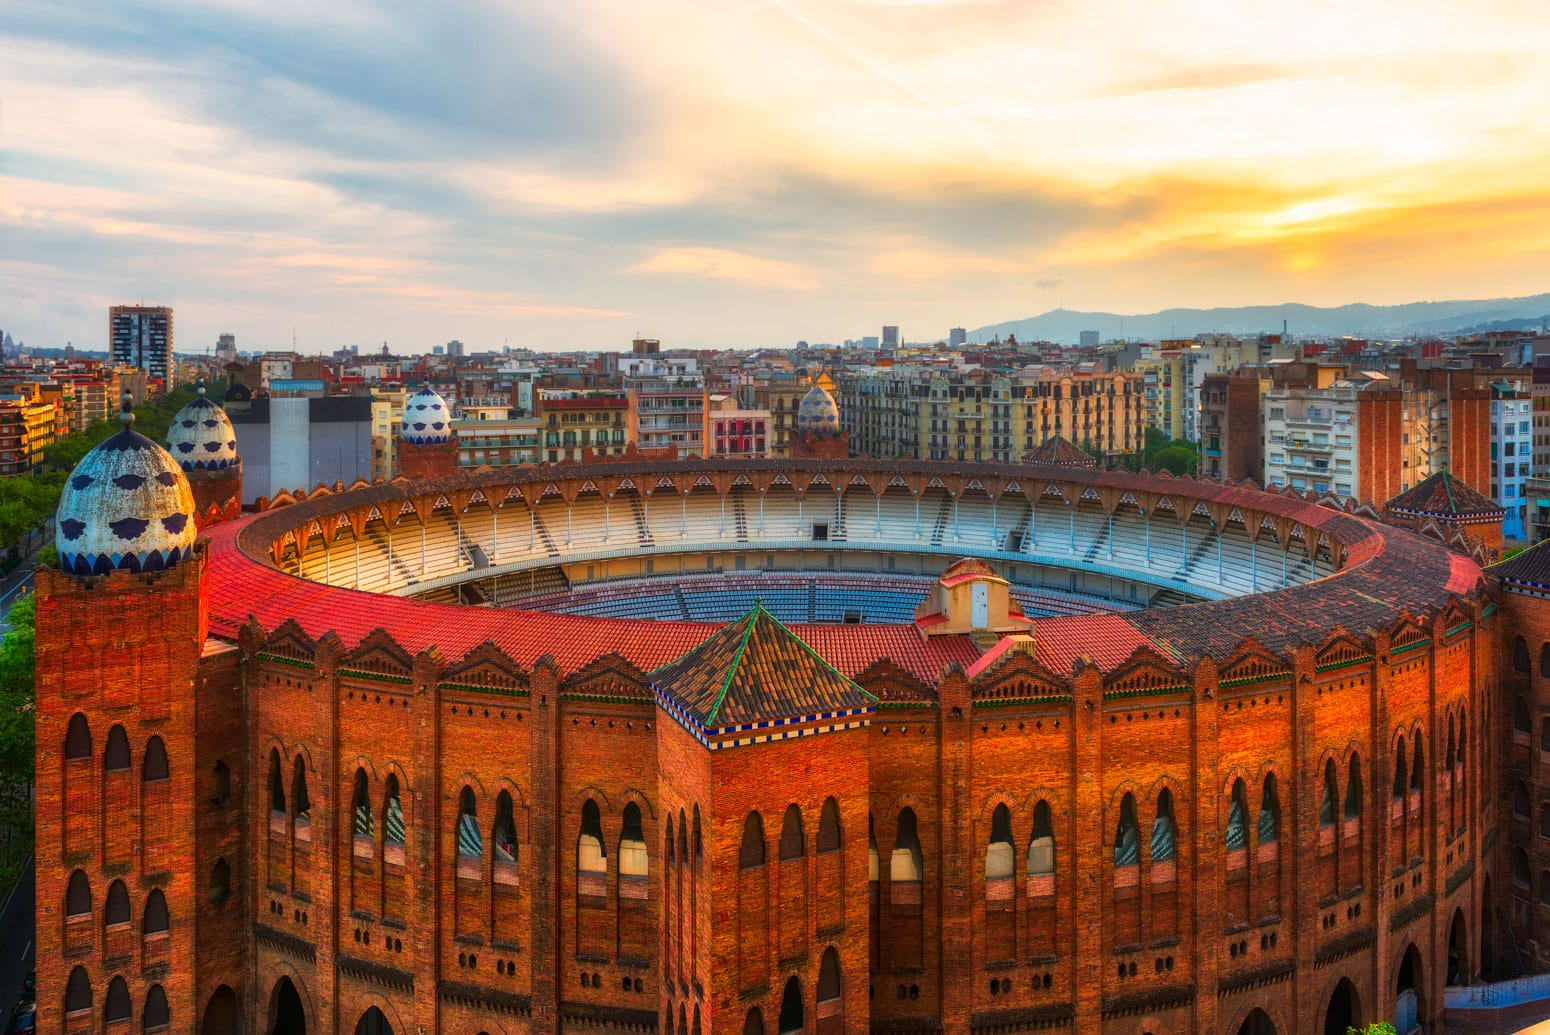 La Monumental bullring in Barcelona, Spain